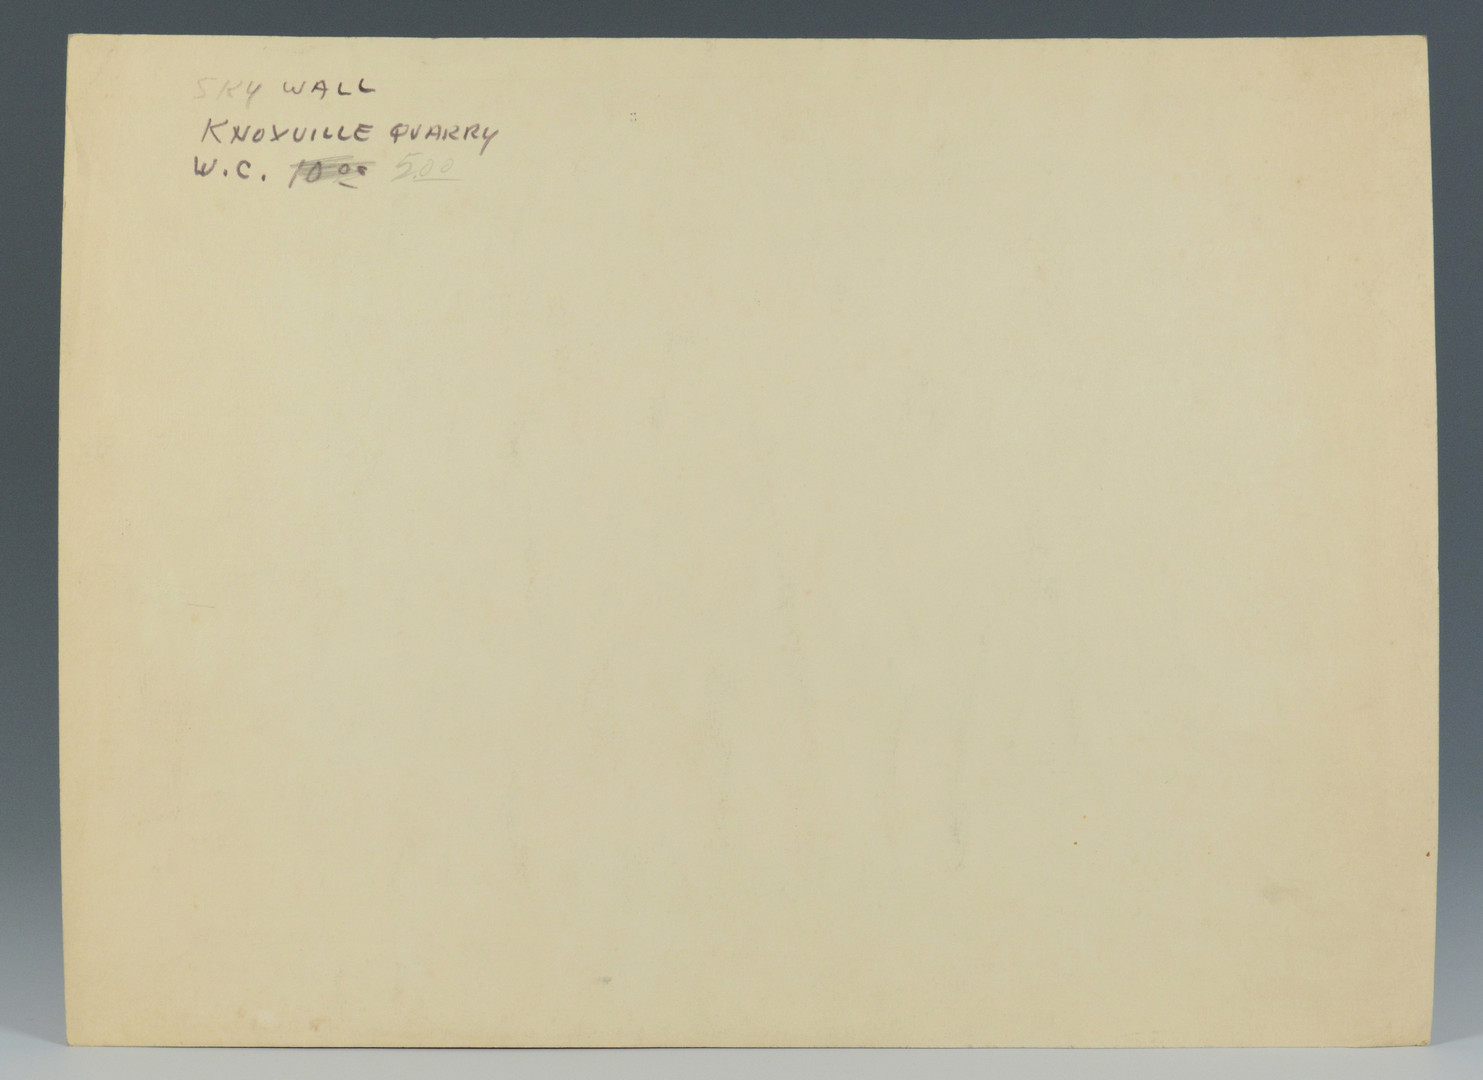 Lot 184: Carl Sublett W/C, Knoxville Quarry